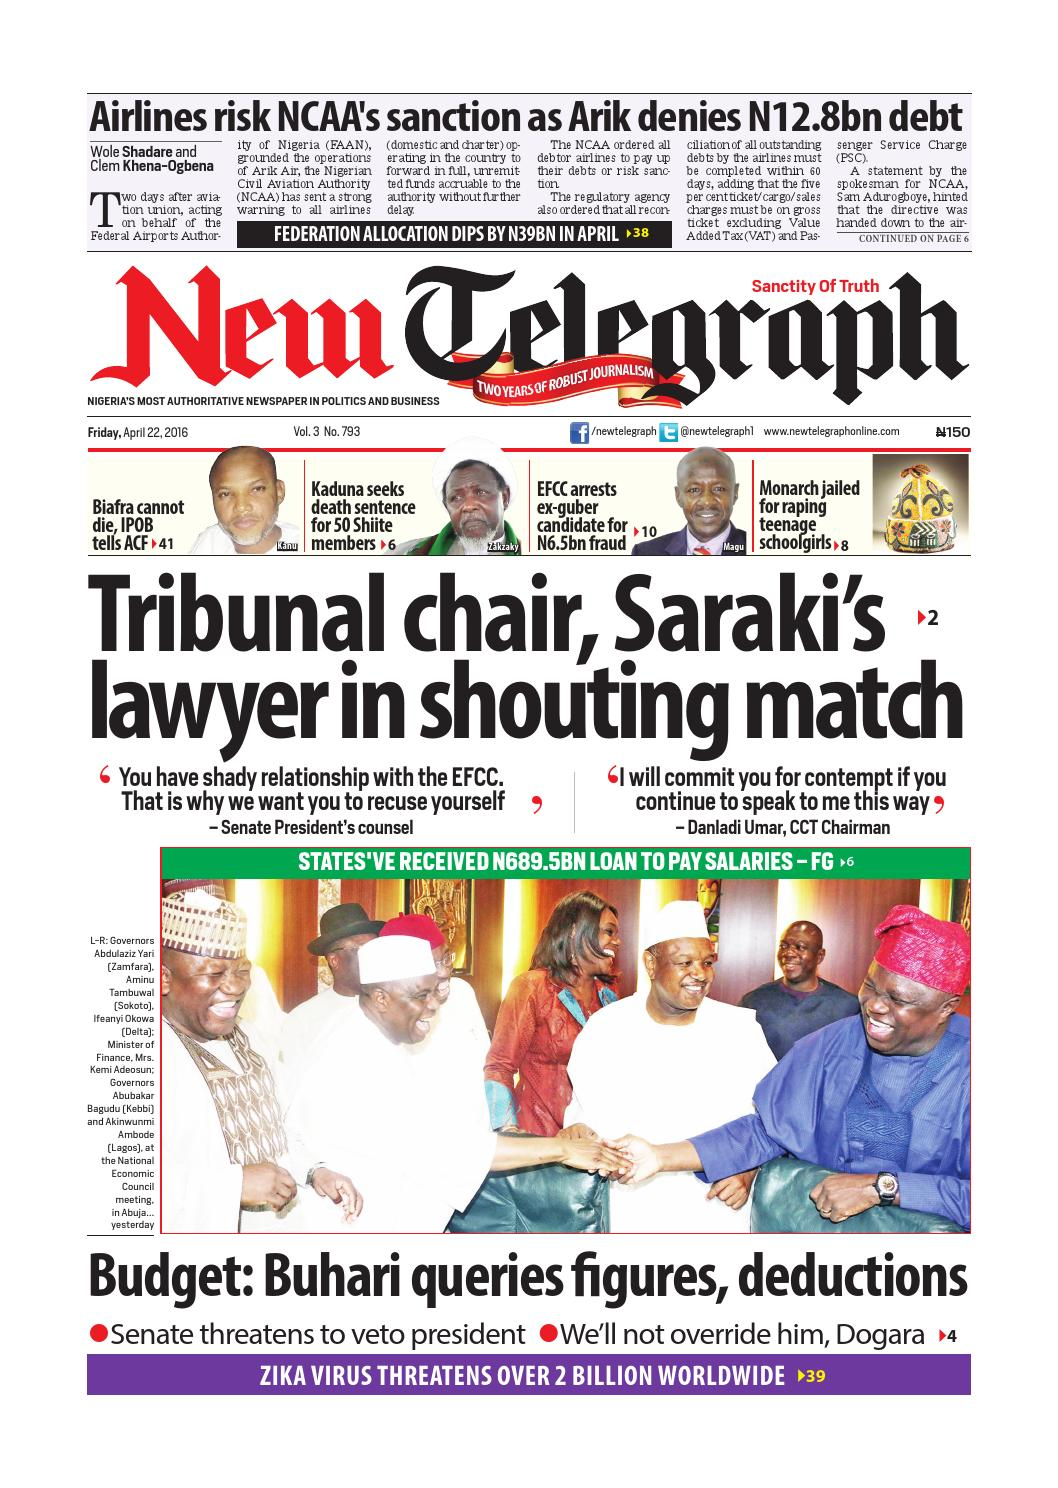 Friday, april 22, 2016 new telegraph by Newtelegraphonline